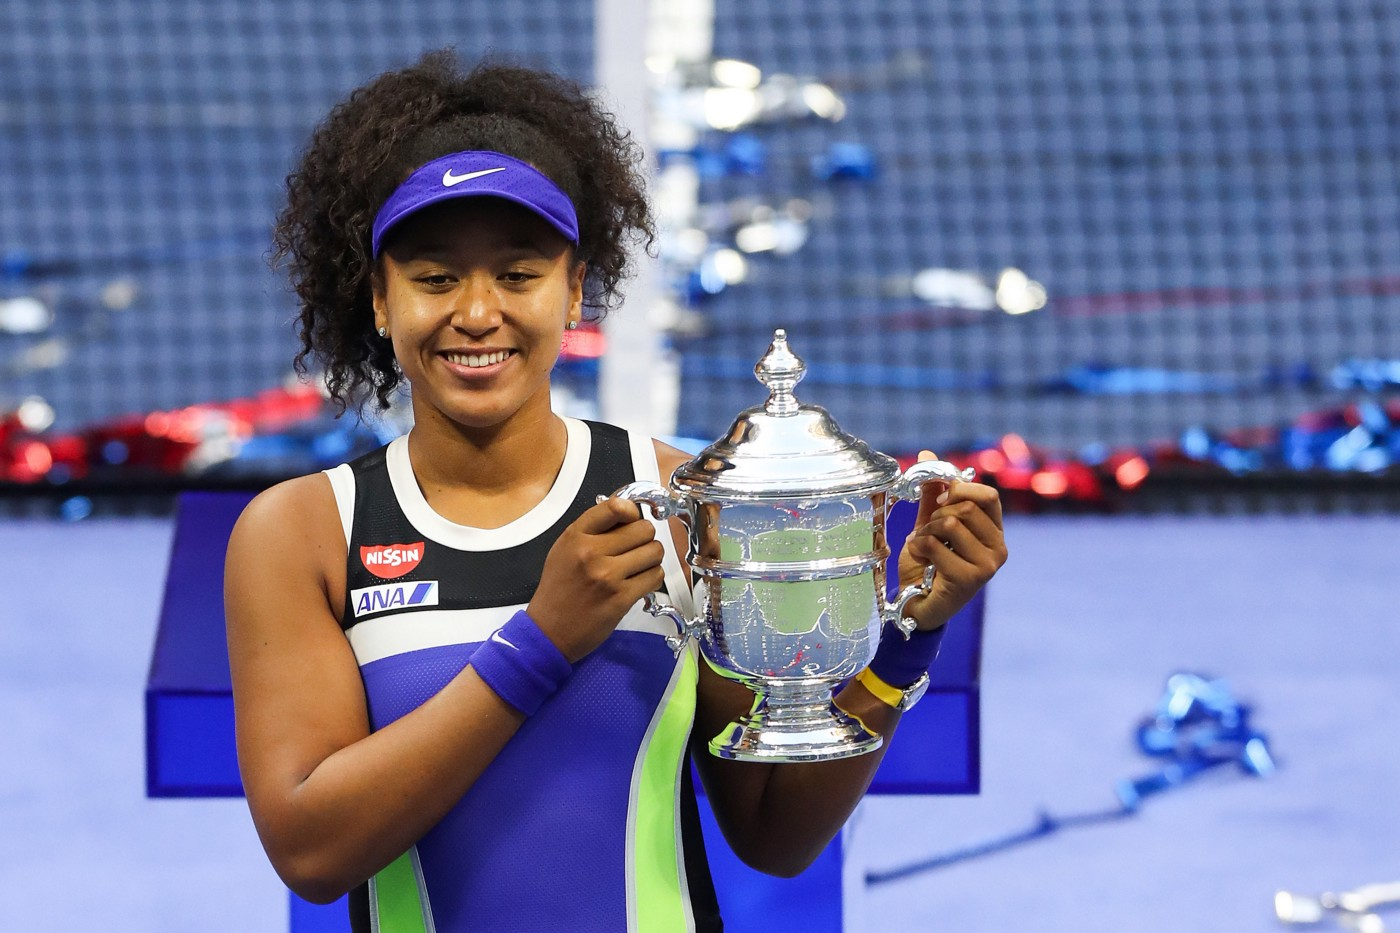 Head to mid body shot of Naomi Osaka, wearing bright blue and green athletic clothing, holding a trophy from a tennis tournament, and smiling.